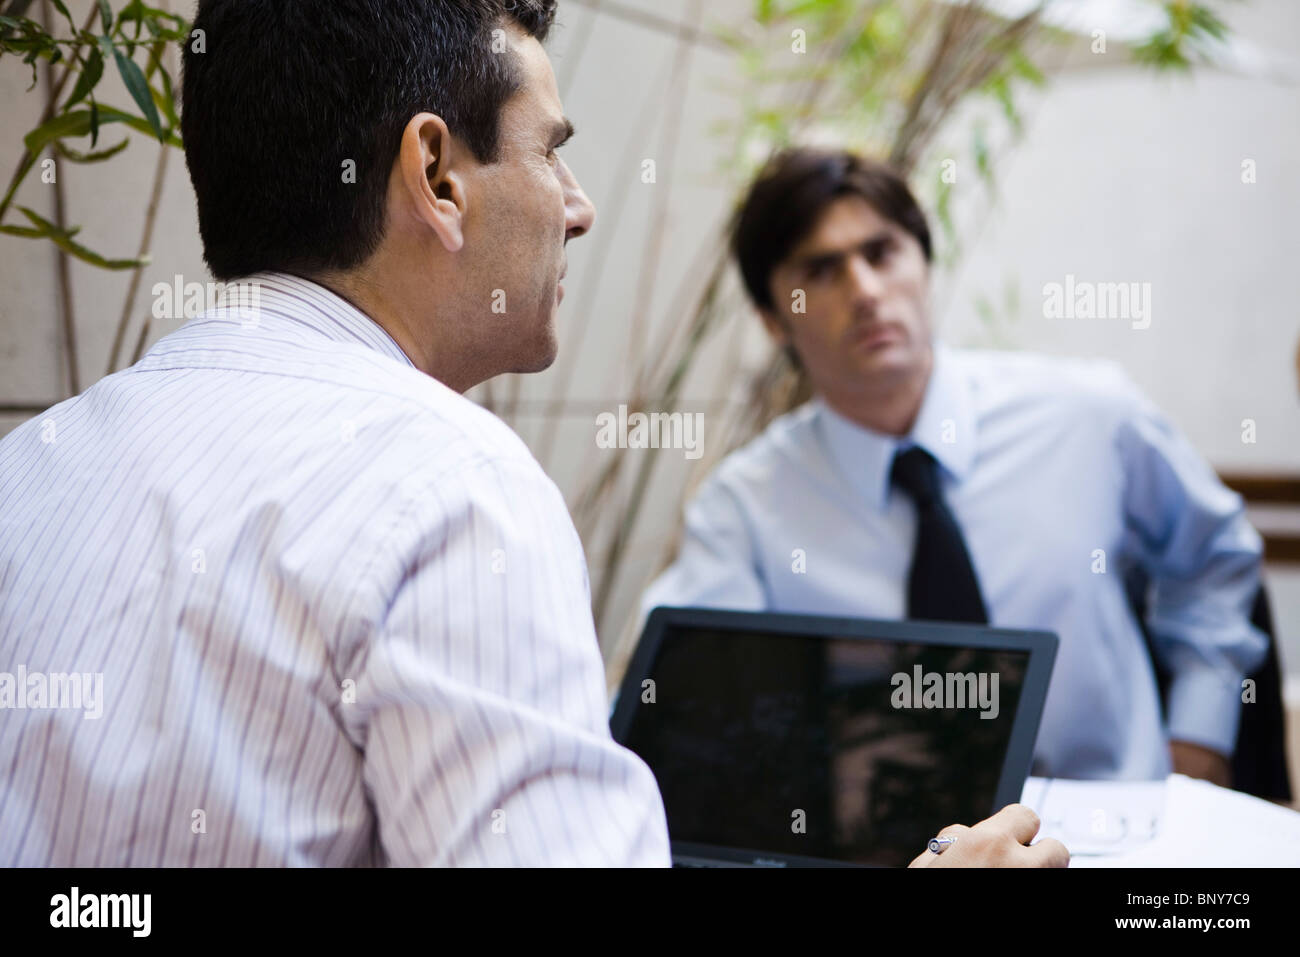 Businessmen meeting at outdoor cafe - Stock Image